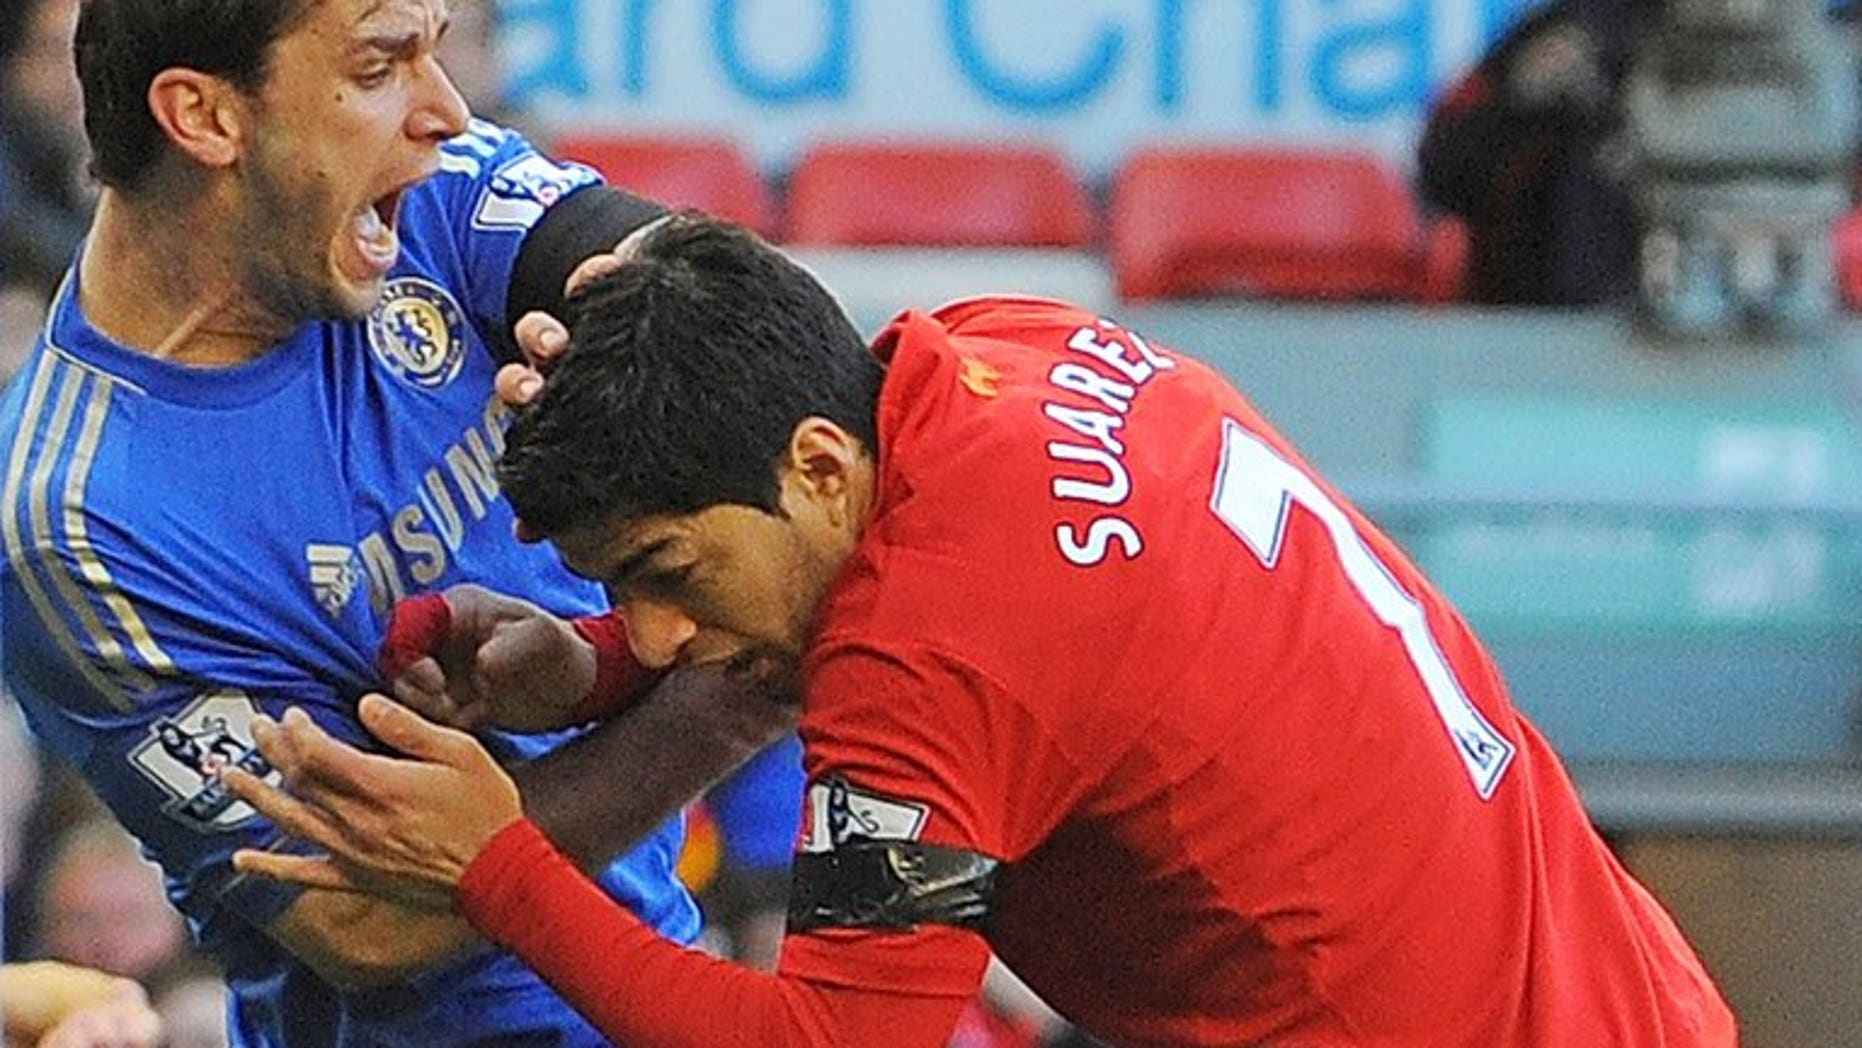 Luis Suarez (right) clashes with Chelsea's Branislav Ivanovic after biting him at Anfield on April 21. Liverpool captain Steven Gerrard revealed Wednesday he has been working to convince Suarez to remain at the club as Arsenal reportedly upped their bid for the Uruguay striker to ??40 mn ($61 mn).